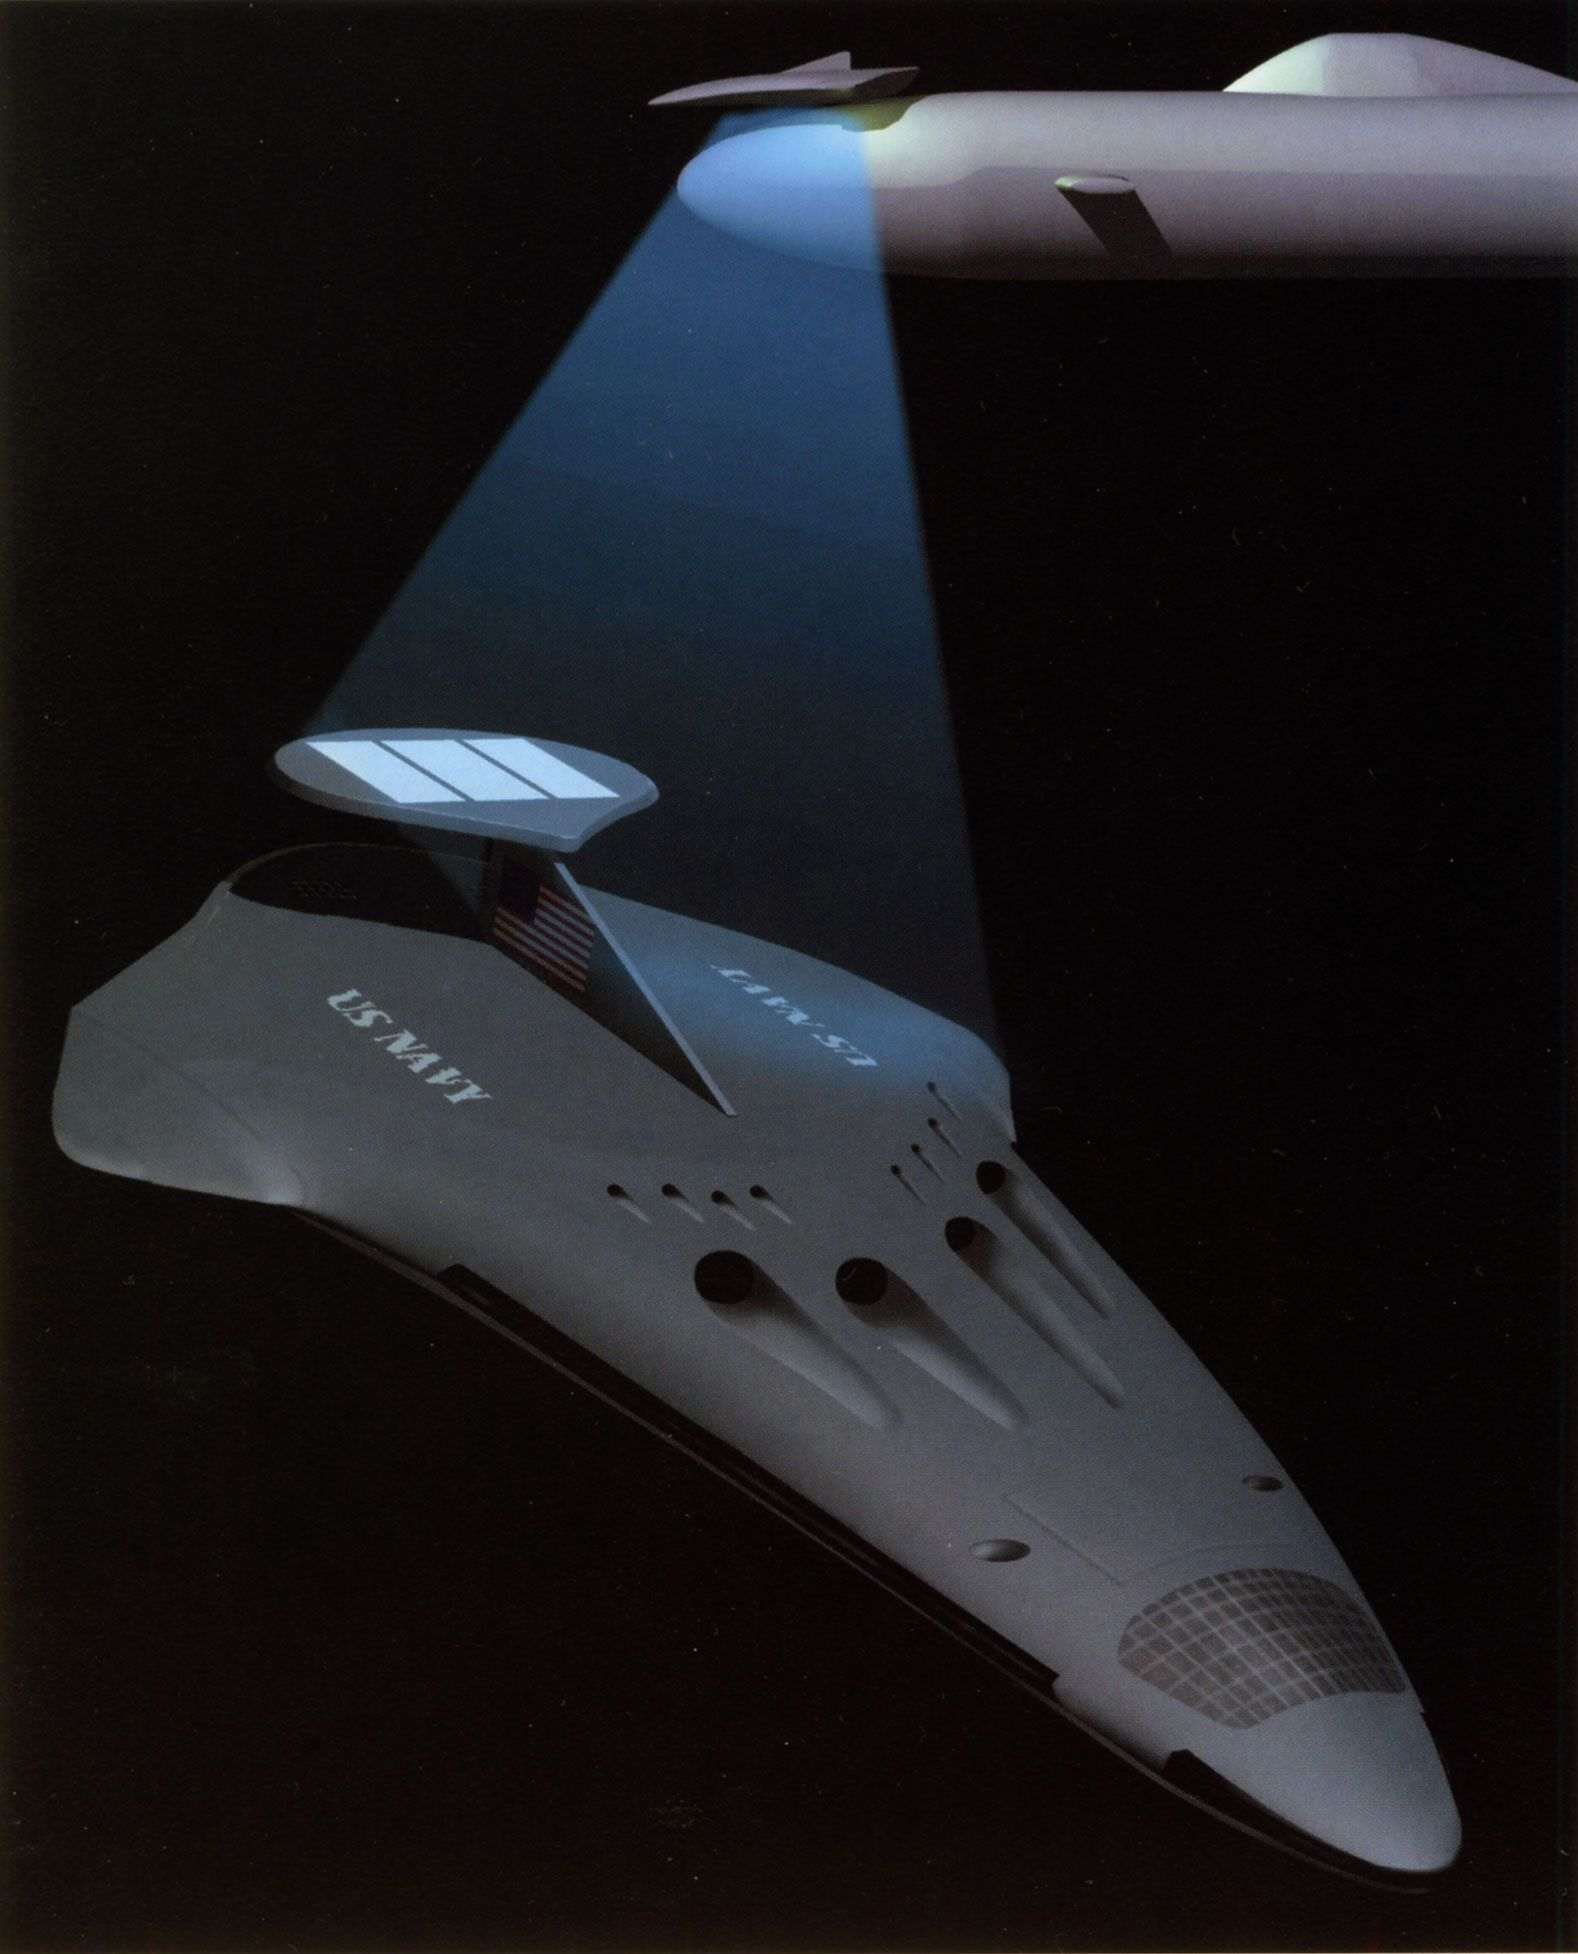 Future Submarine Concepts | Re: US future submarine ...